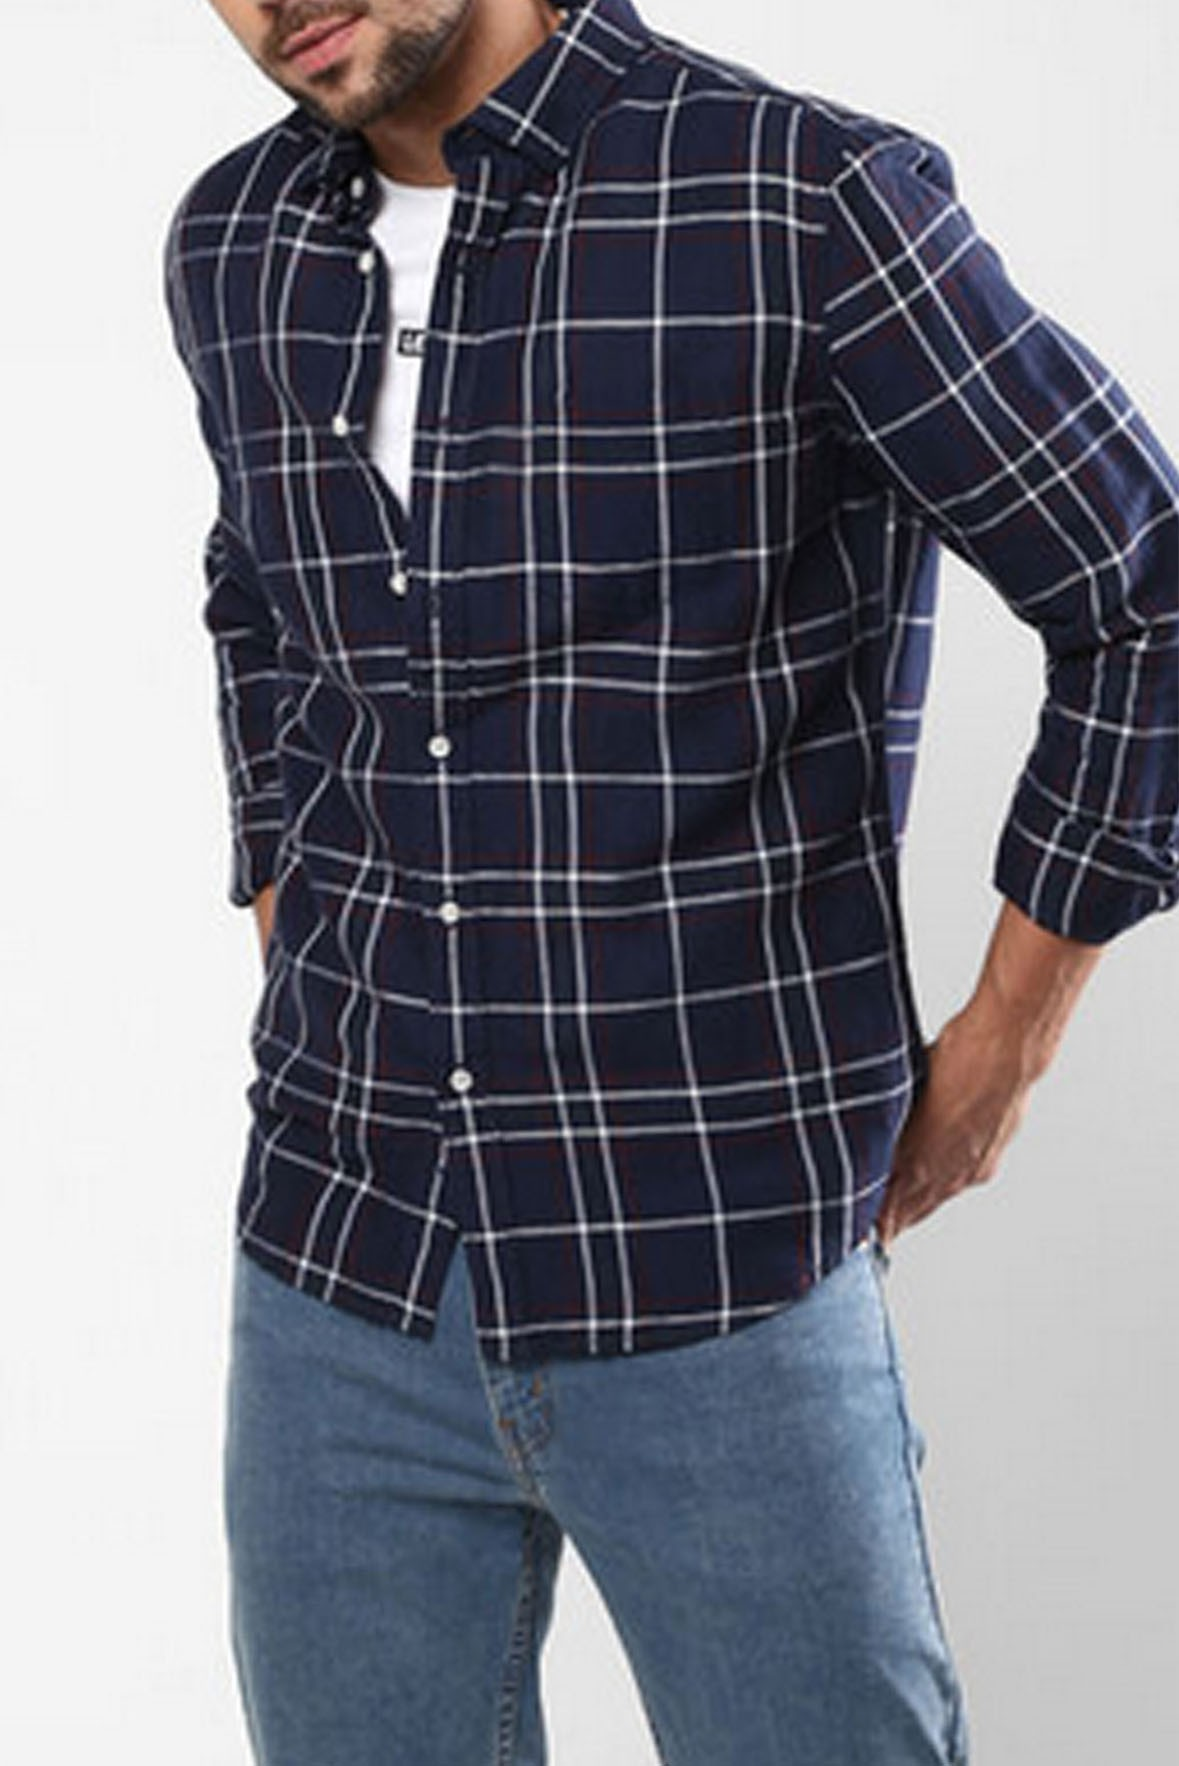 Men's Basic Full Sleeves White and Black Check Shirt S194